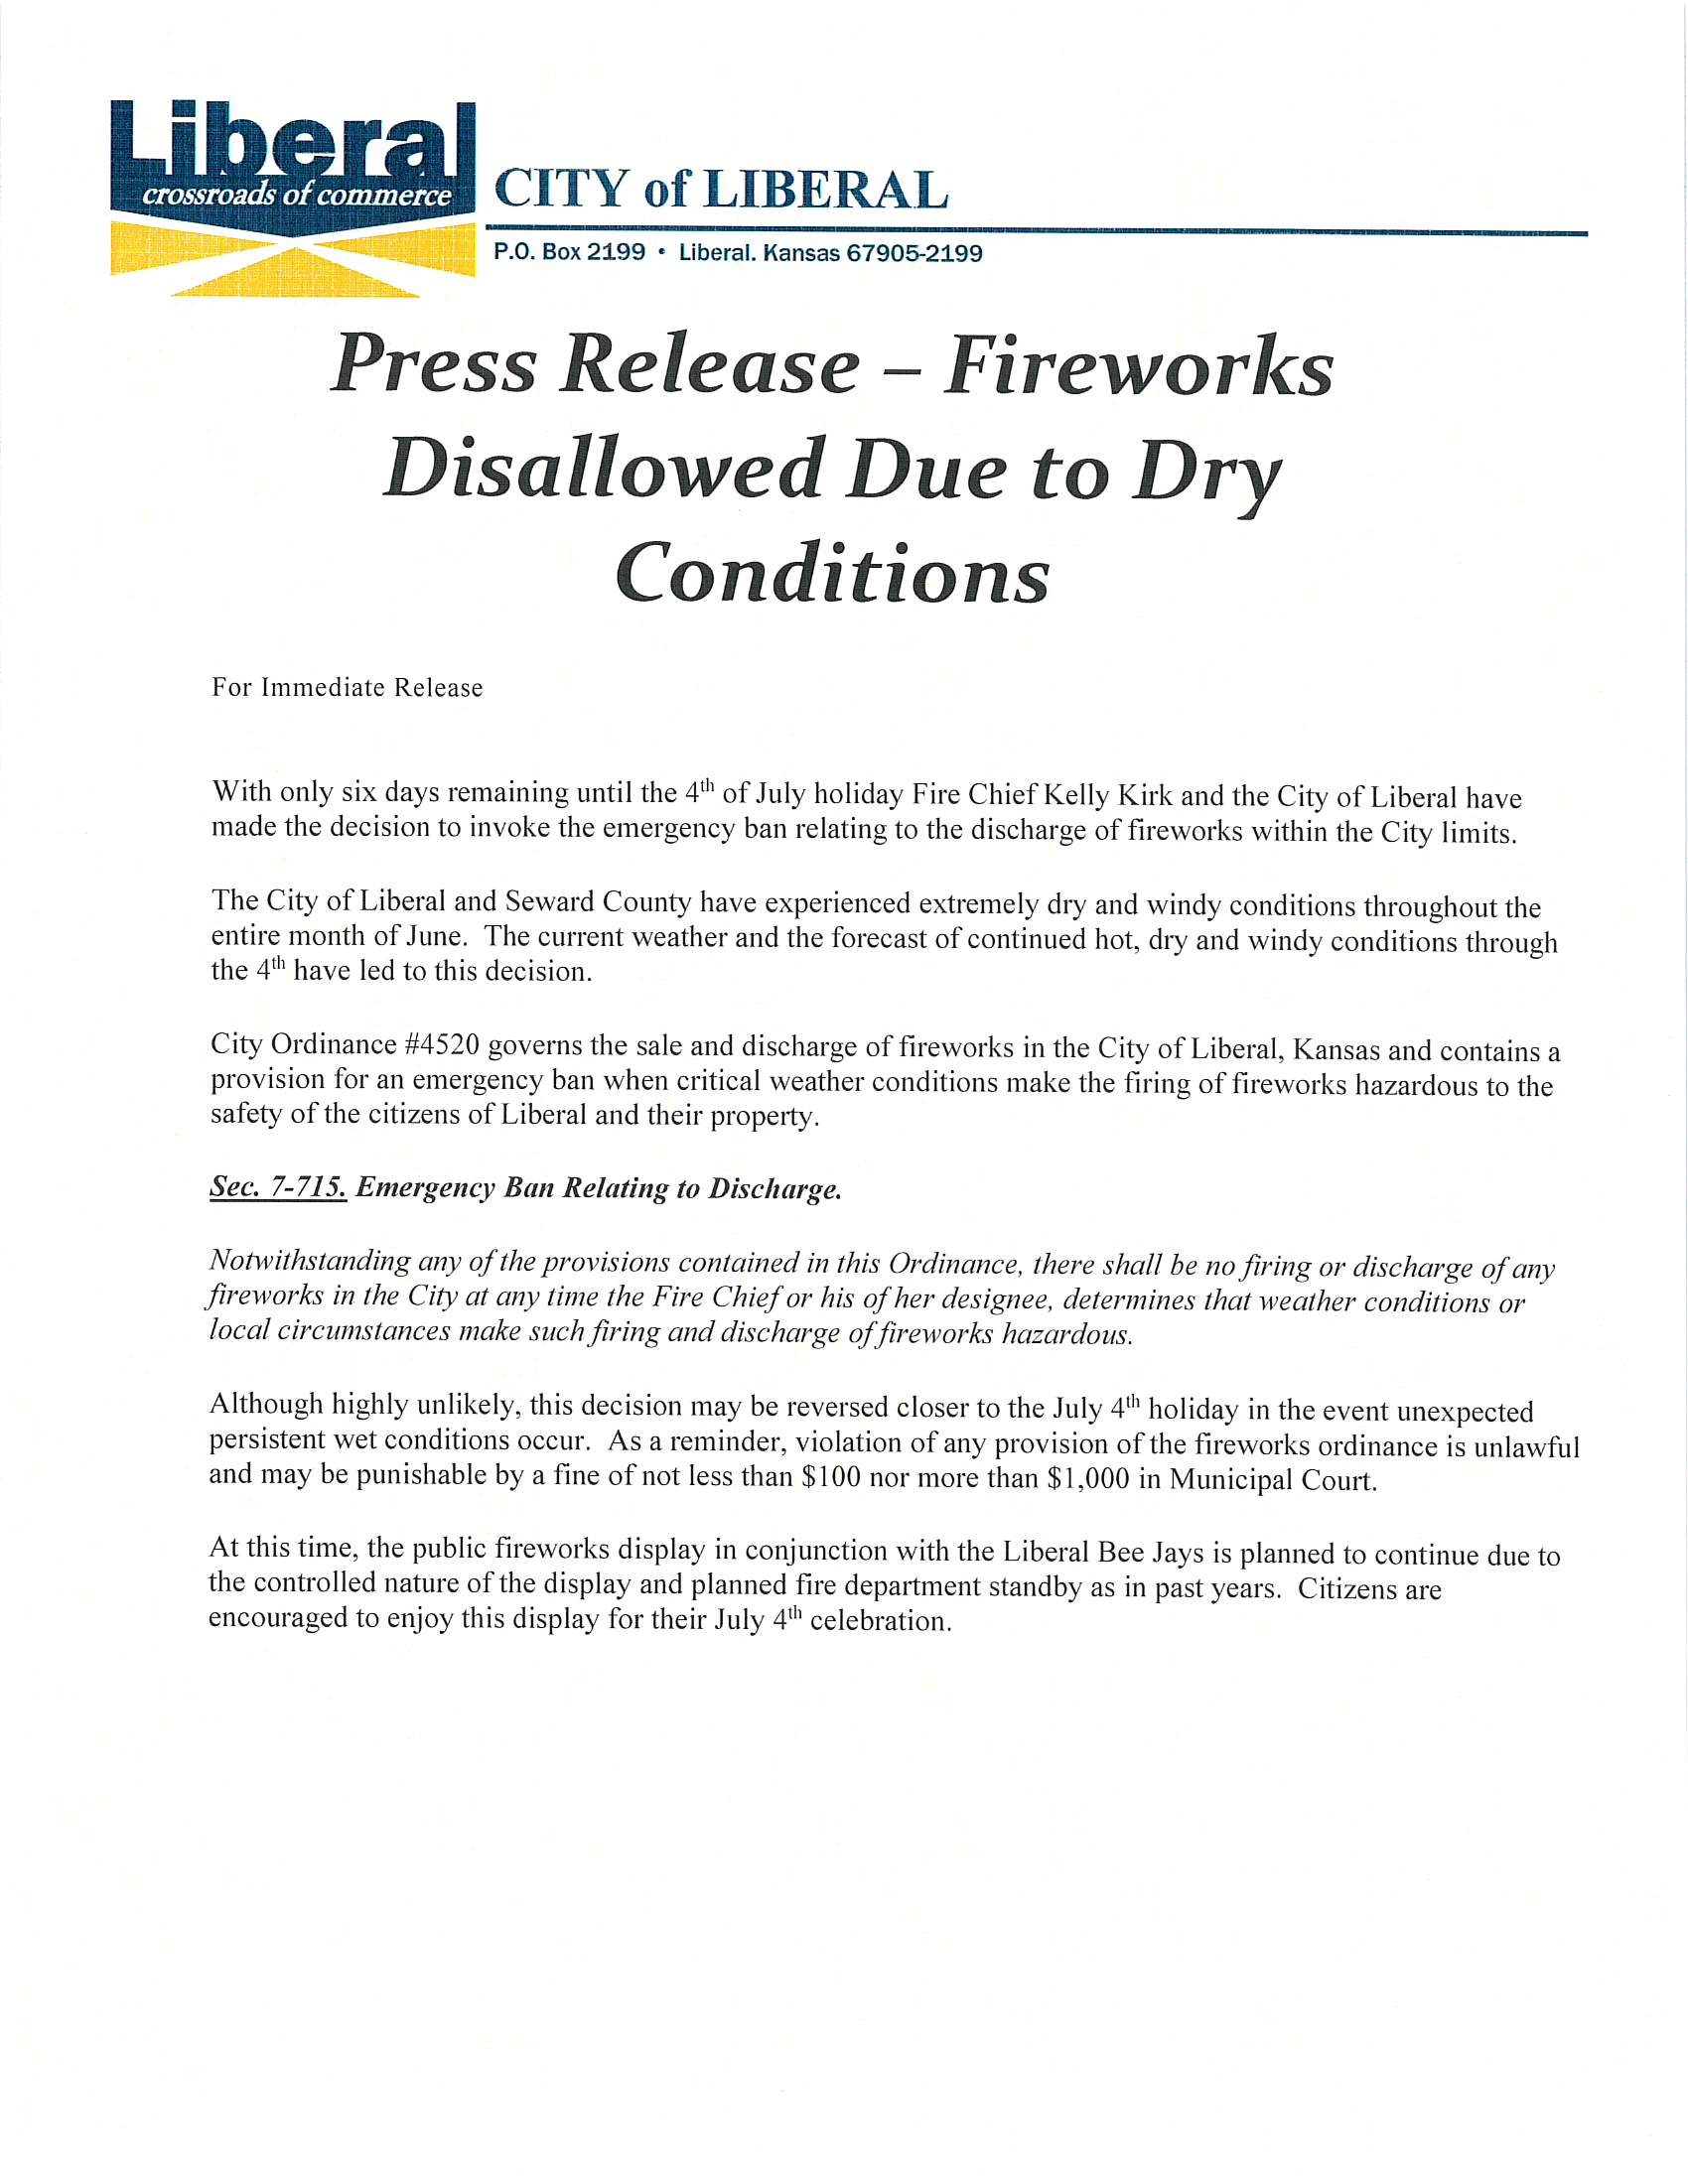 6-29-20 Ban Discharge of Fireworks